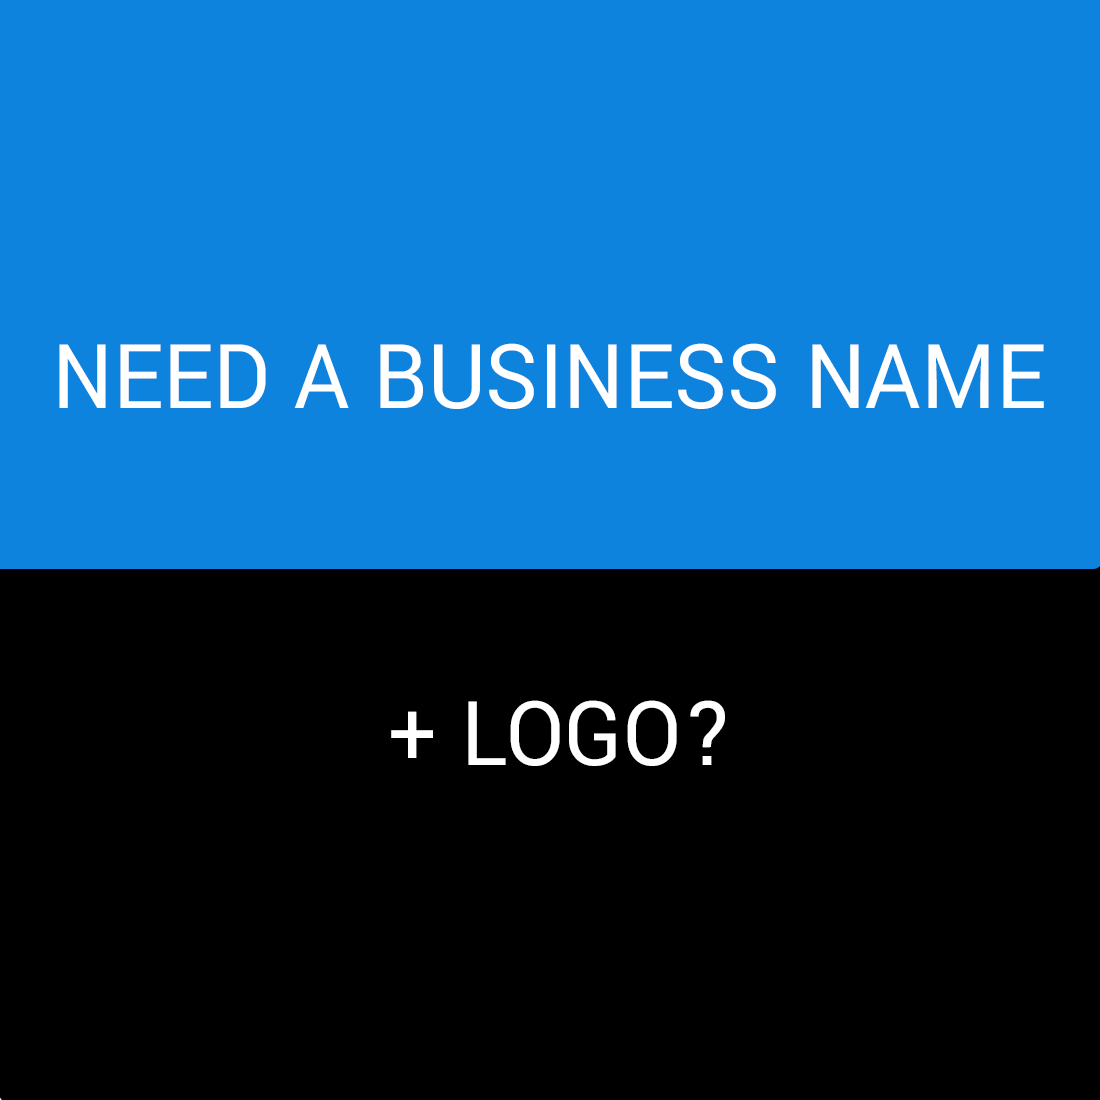 BUSINESS NAME + LOGO